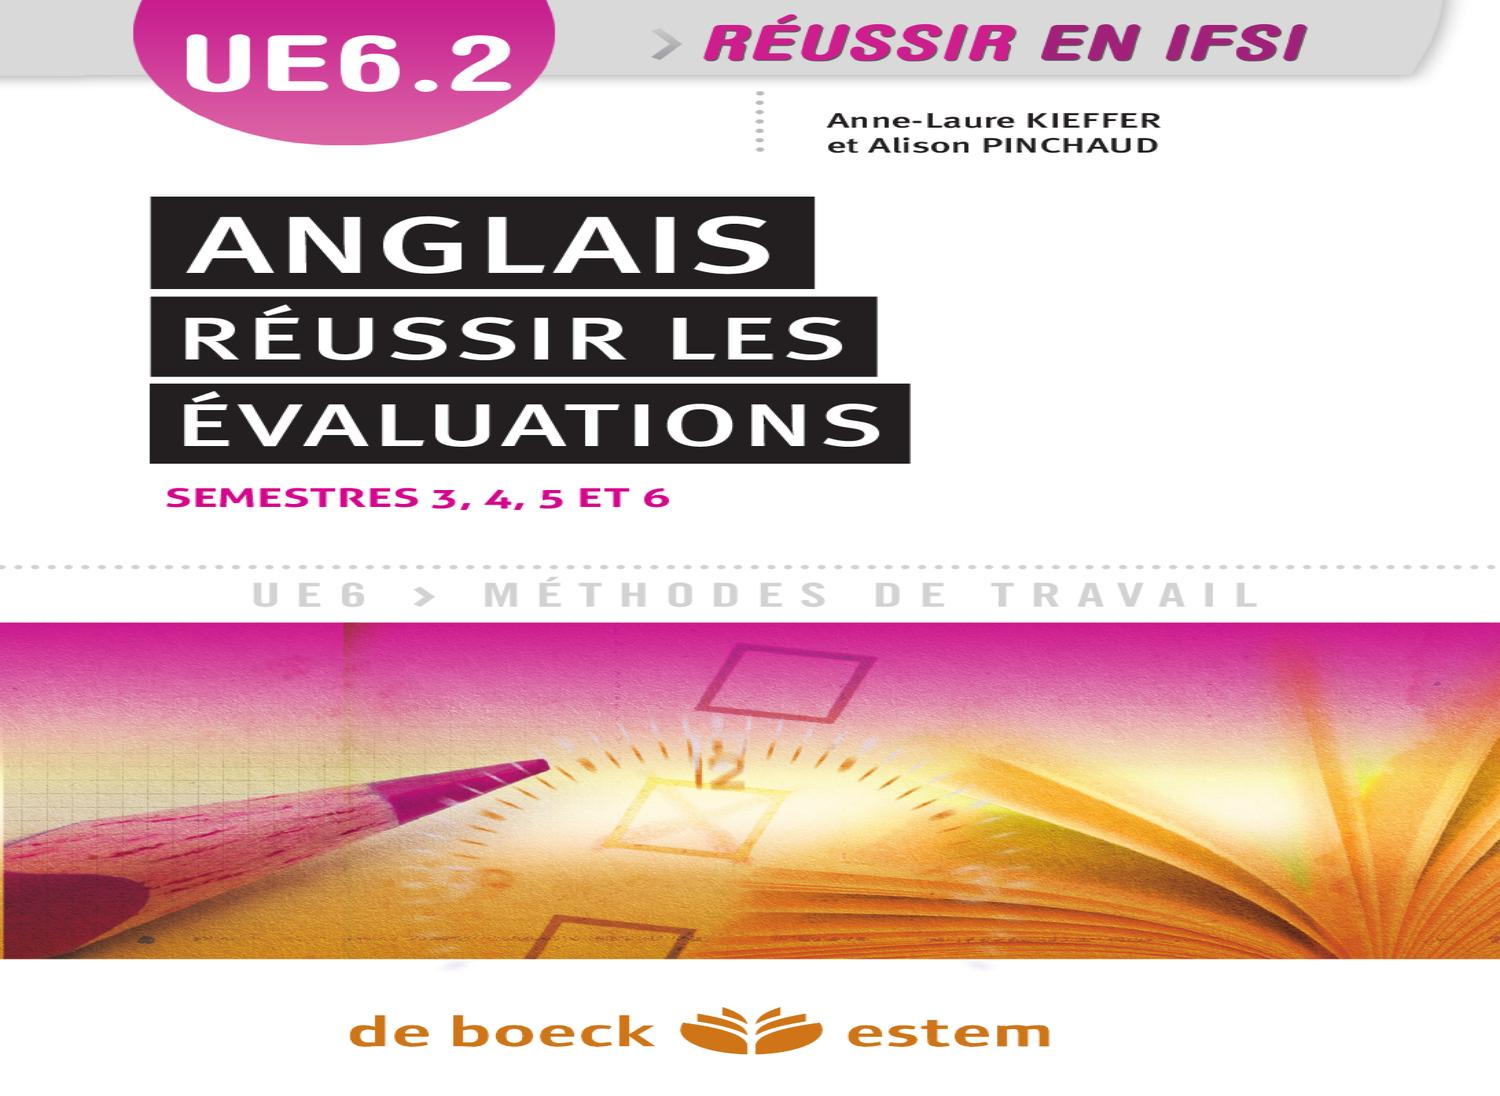 ue6 2 anglais r u00e9ussir les  u00e9valuations by groupe de boeck